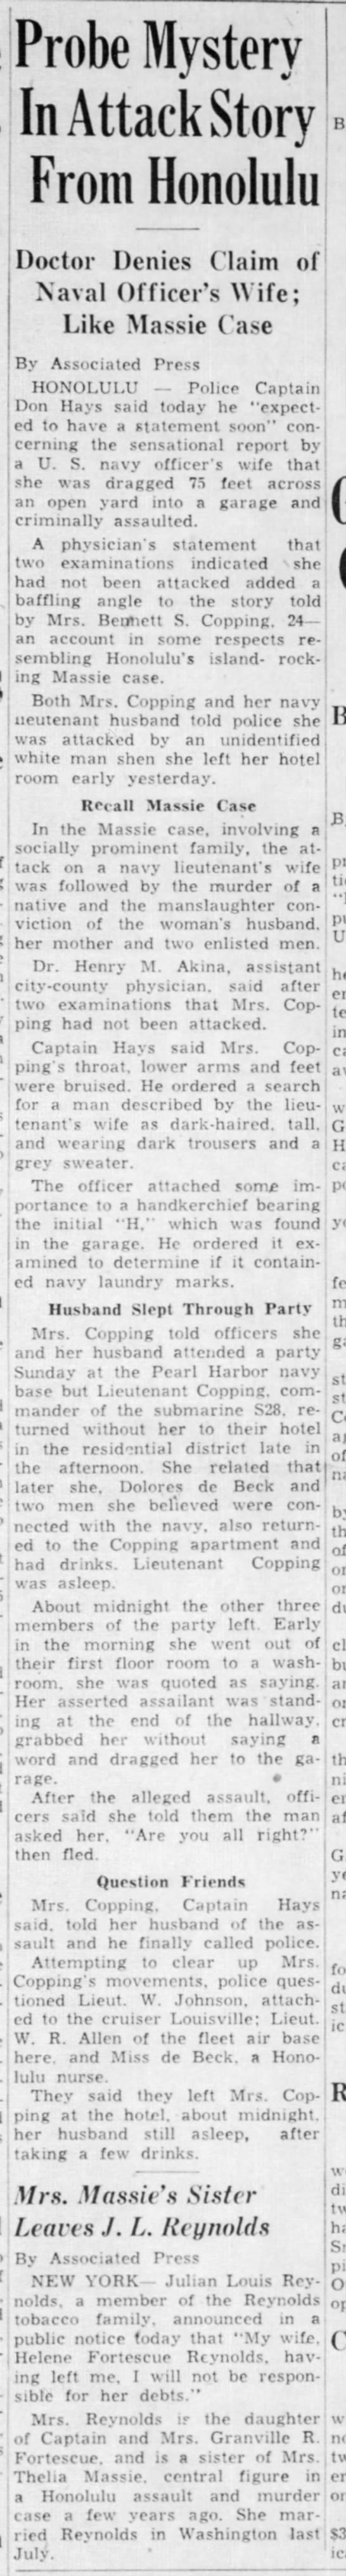 Story about Copping case 1937 Decatur Daily Review - War!InAttackStory laugh-t immediate-r,i i ;...